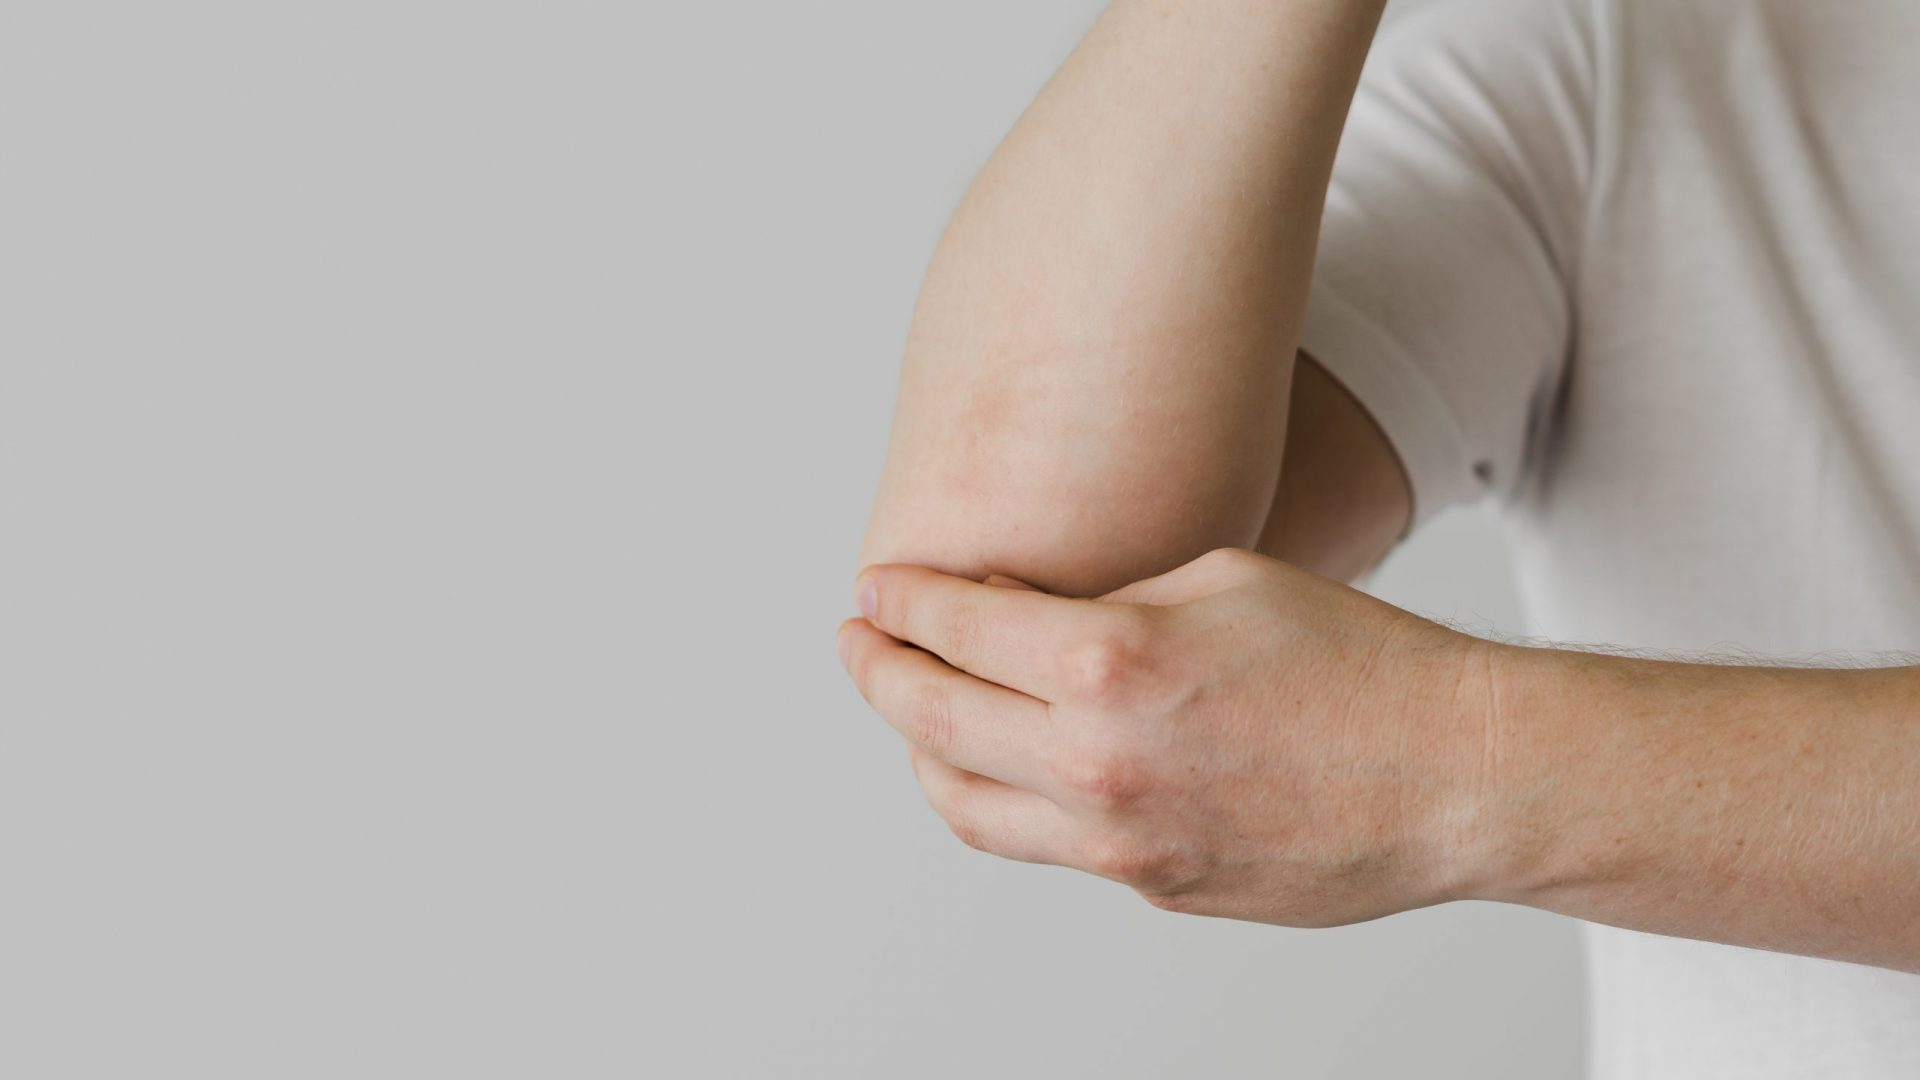 close-up-patient-elbow-issues